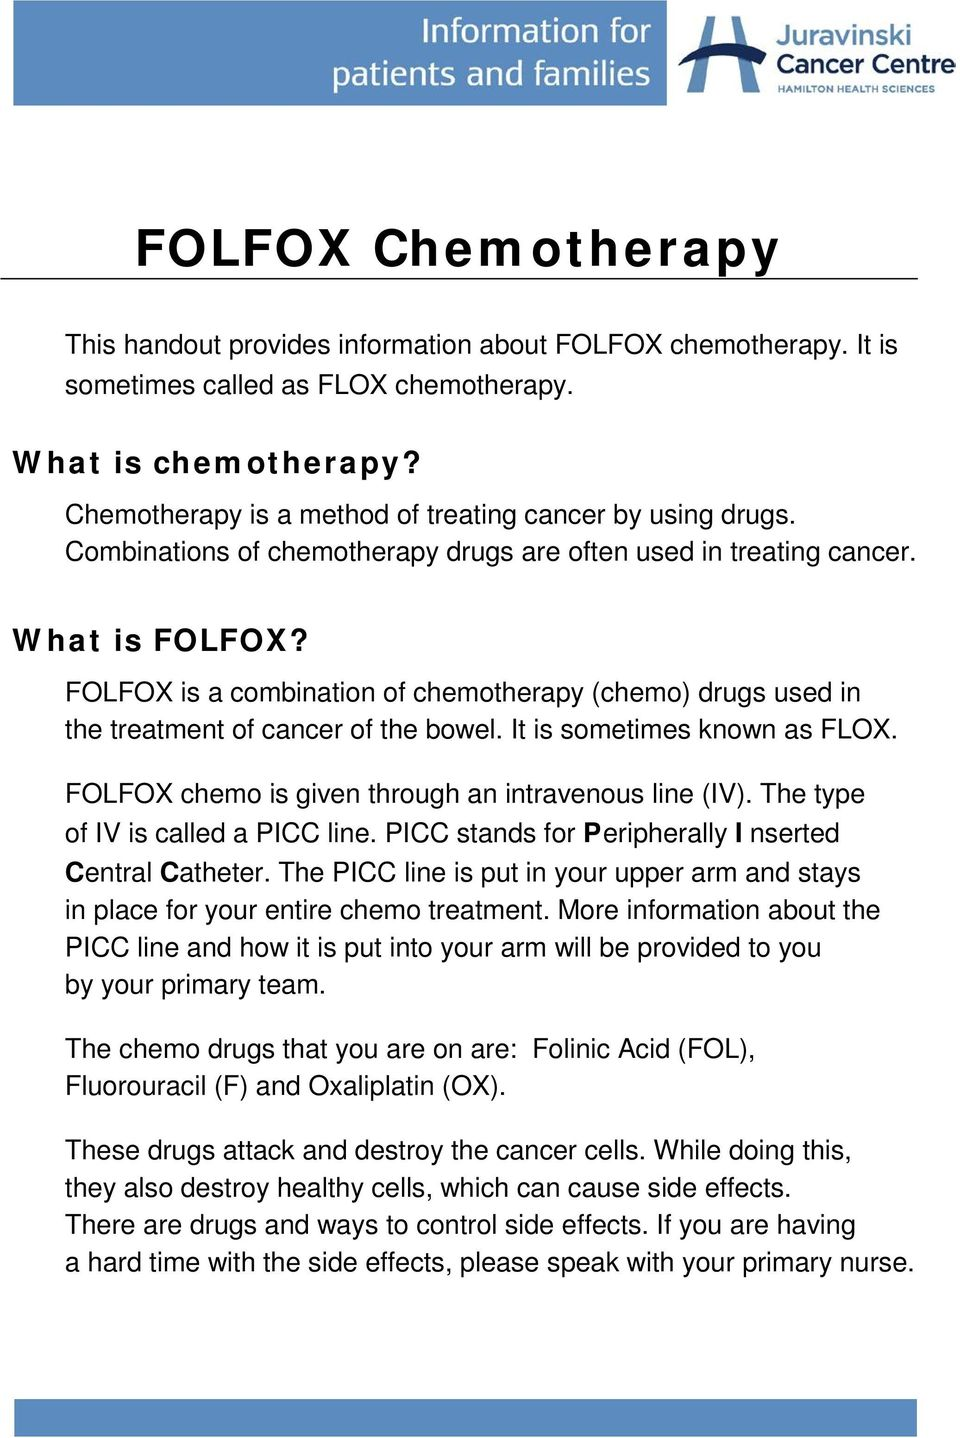 FOLFOX is a combination of chemotherapy (chemo) drugs used in the treatment of cancer of the bowel. It is sometimes known as FLOX. FOLFOX chemo is given through an intravenous line (IV).